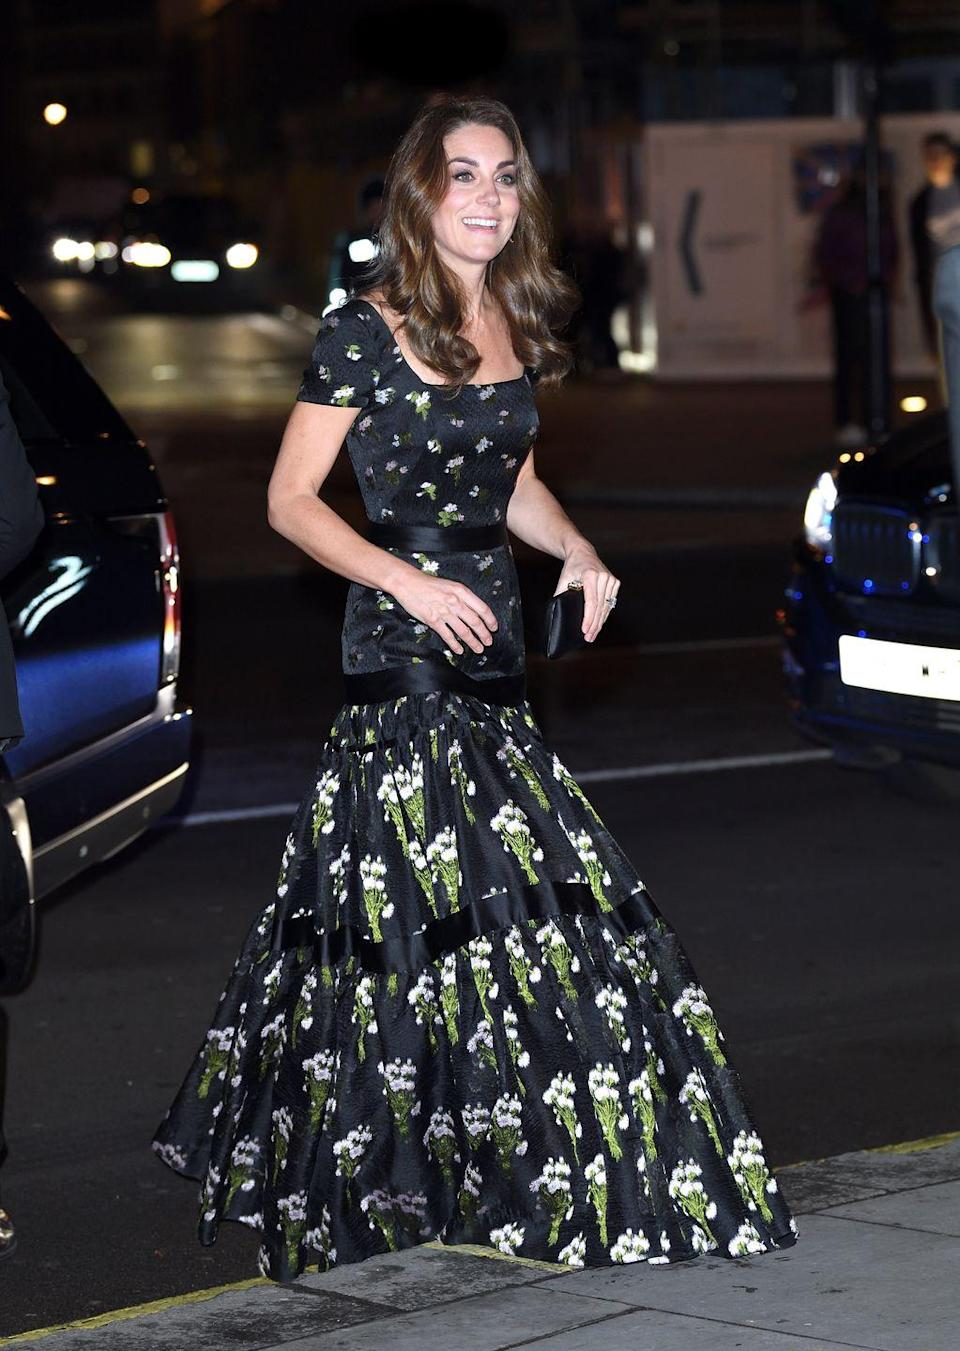 """<p>Kate Middleton attended the <a href=""""https://www.townandcountrymag.com/style/fashion-trends/a26789213/kate-middleton-alexander-mcqueen-national-portrait-gallery-gala-2019/"""" rel=""""nofollow noopener"""" target=""""_blank"""" data-ylk=""""slk:National Portrait Gallery Gala"""" class=""""link rapid-noclick-resp"""">National Portrait Gallery Gala</a> wearing a re-tailored Alexander McQueen dress, that she previously wore in 2017, <a href=""""https://www.neimanmarcus.com/c/designers-kiki-mcdonough-cat46520802"""" rel=""""nofollow noopener"""" target=""""_blank"""" data-ylk=""""slk:Kiki McDonough earrings"""" class=""""link rapid-noclick-resp"""">Kiki McDonough earrings</a>, and a Prada clutch. </p>"""